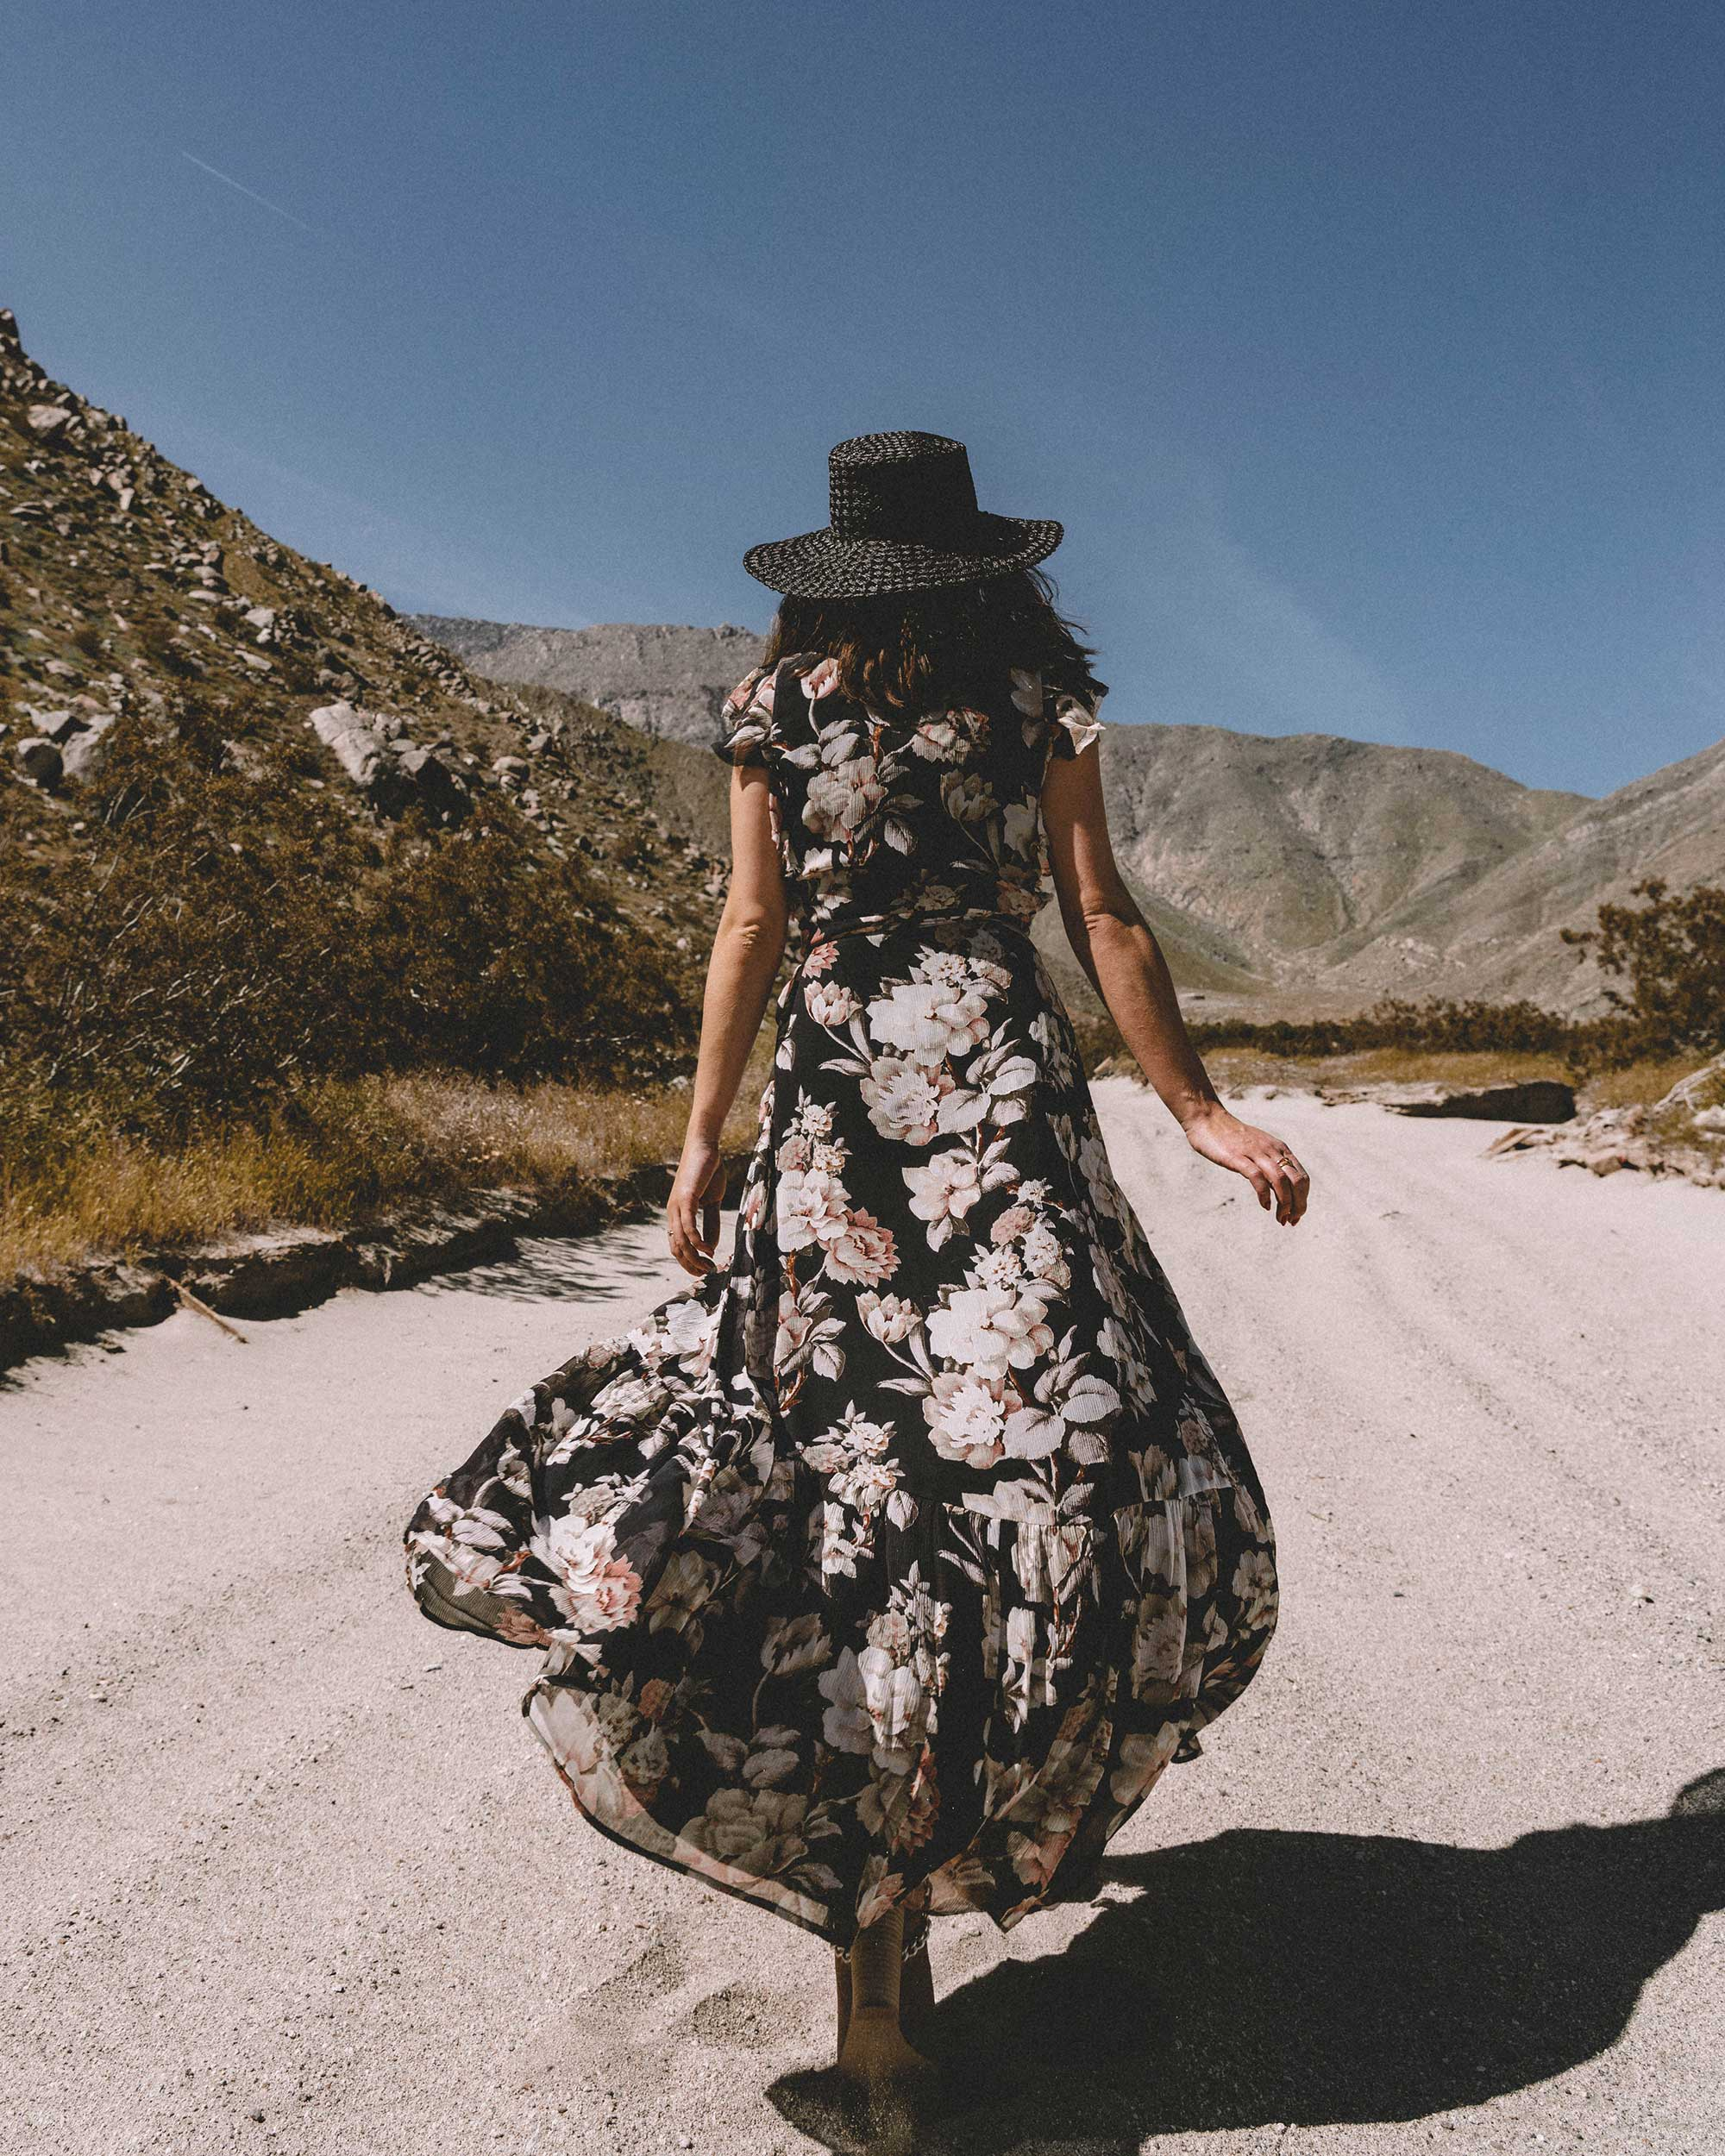 Desert Flower - Paige Maquel silk floral maxi wrap dress in Palm Springs for Coachella festival outfit